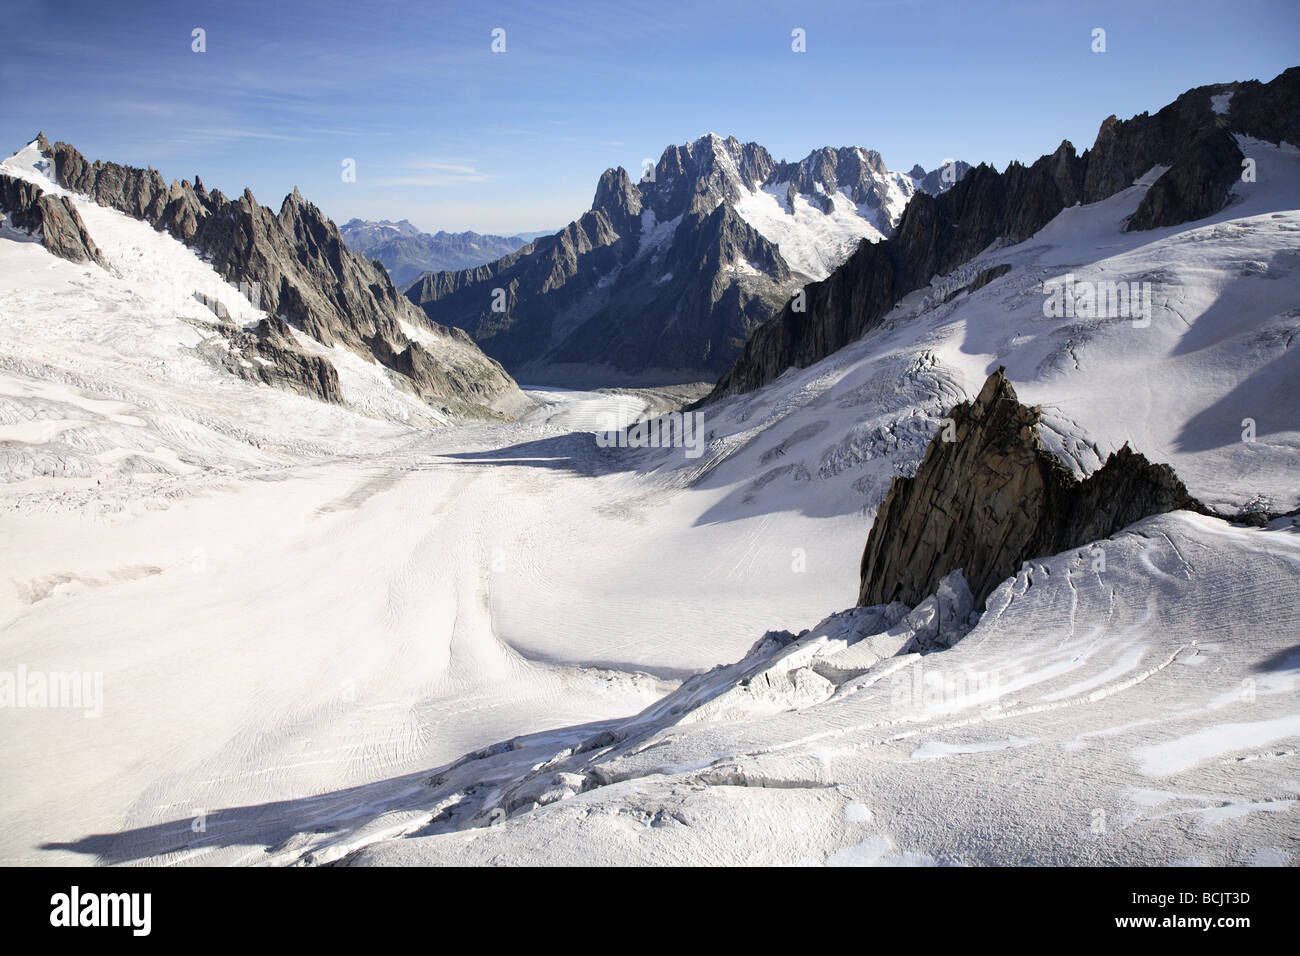 Mountains and glacier near mont blanc - Stock Image